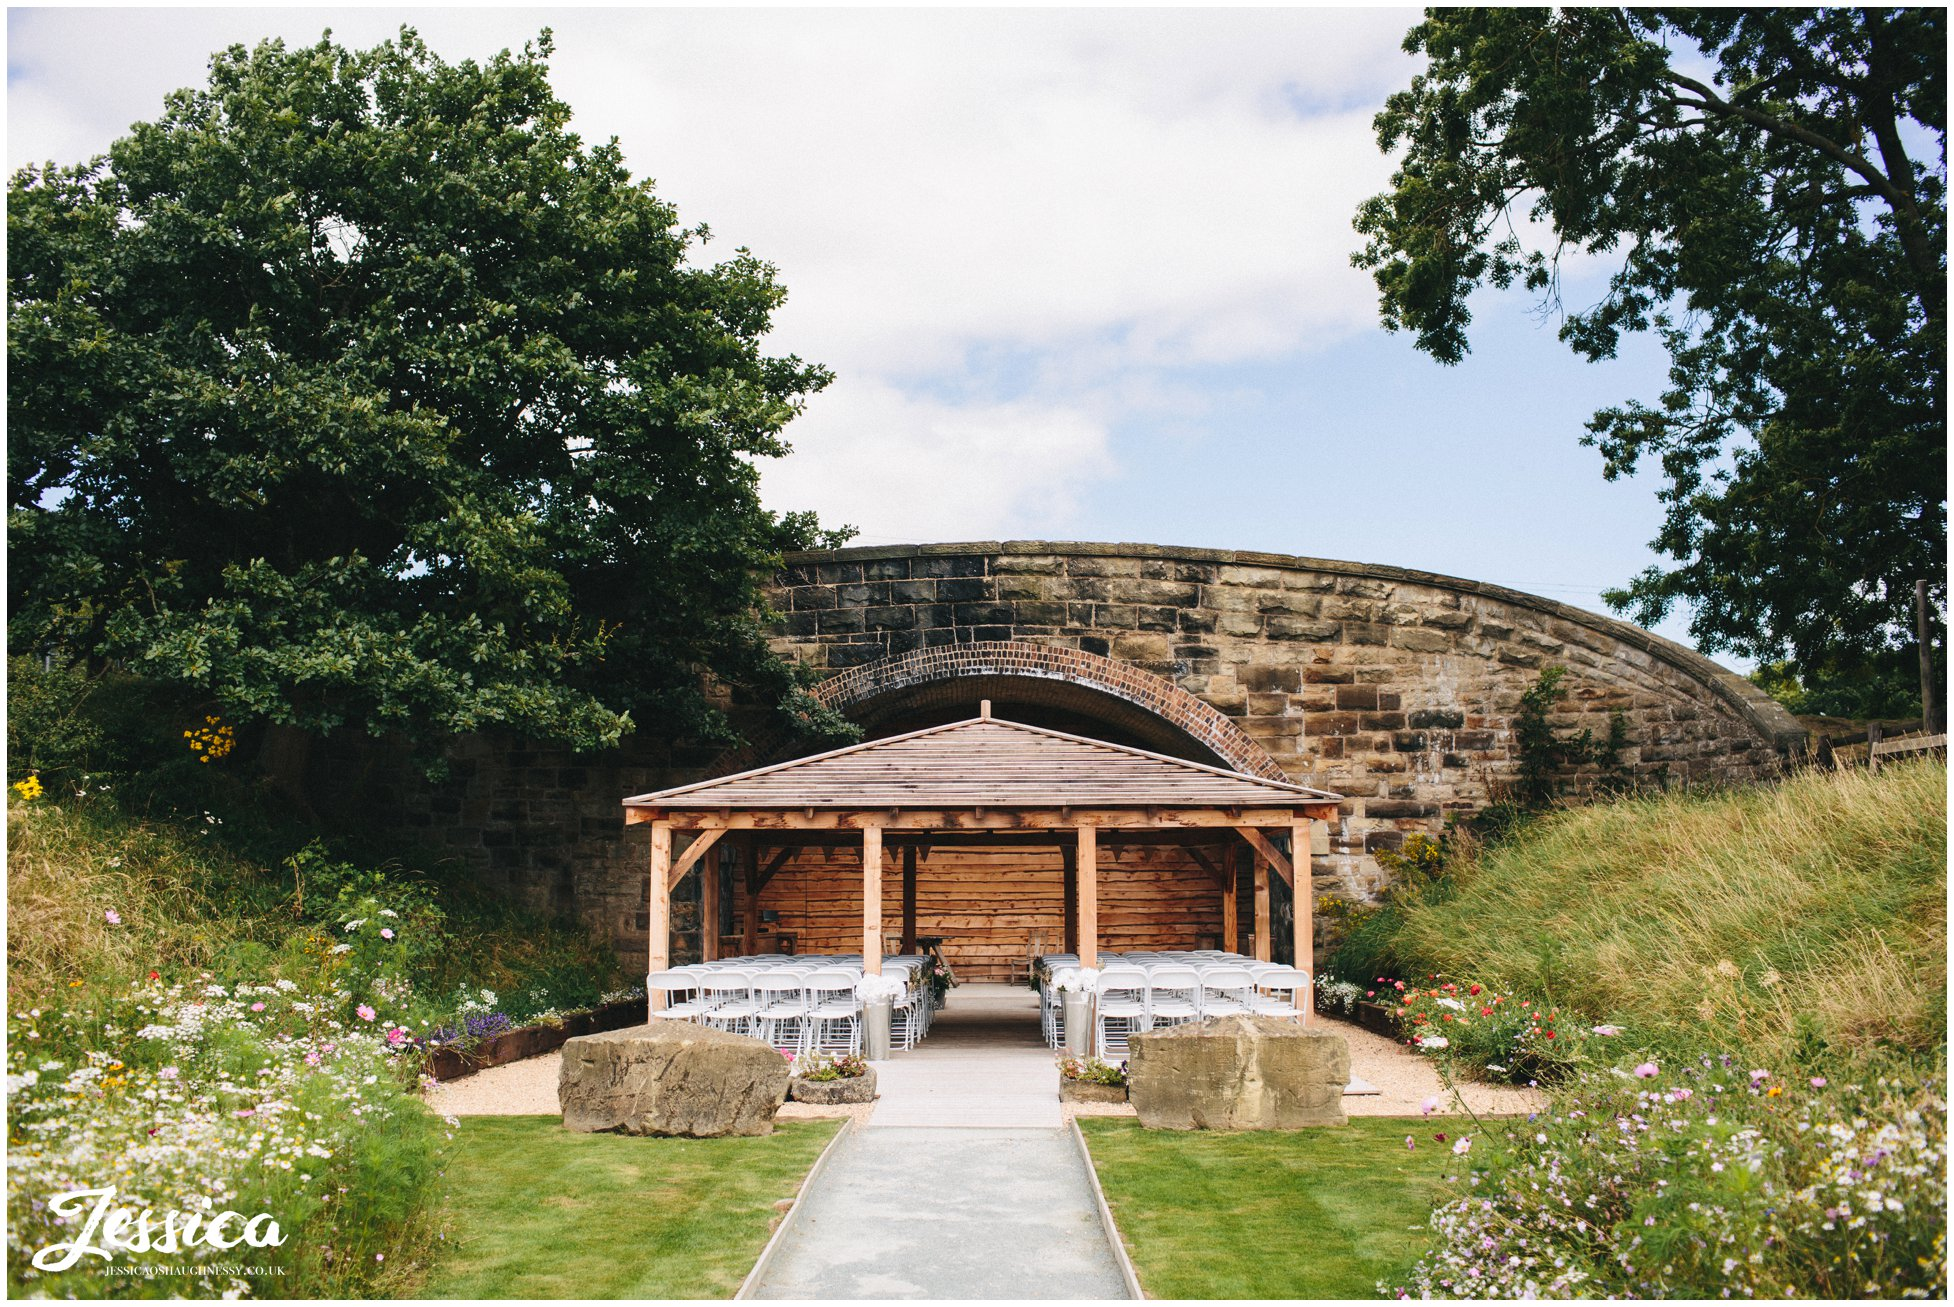 the outdoor ceremony set-up at tower hill barns in north wales